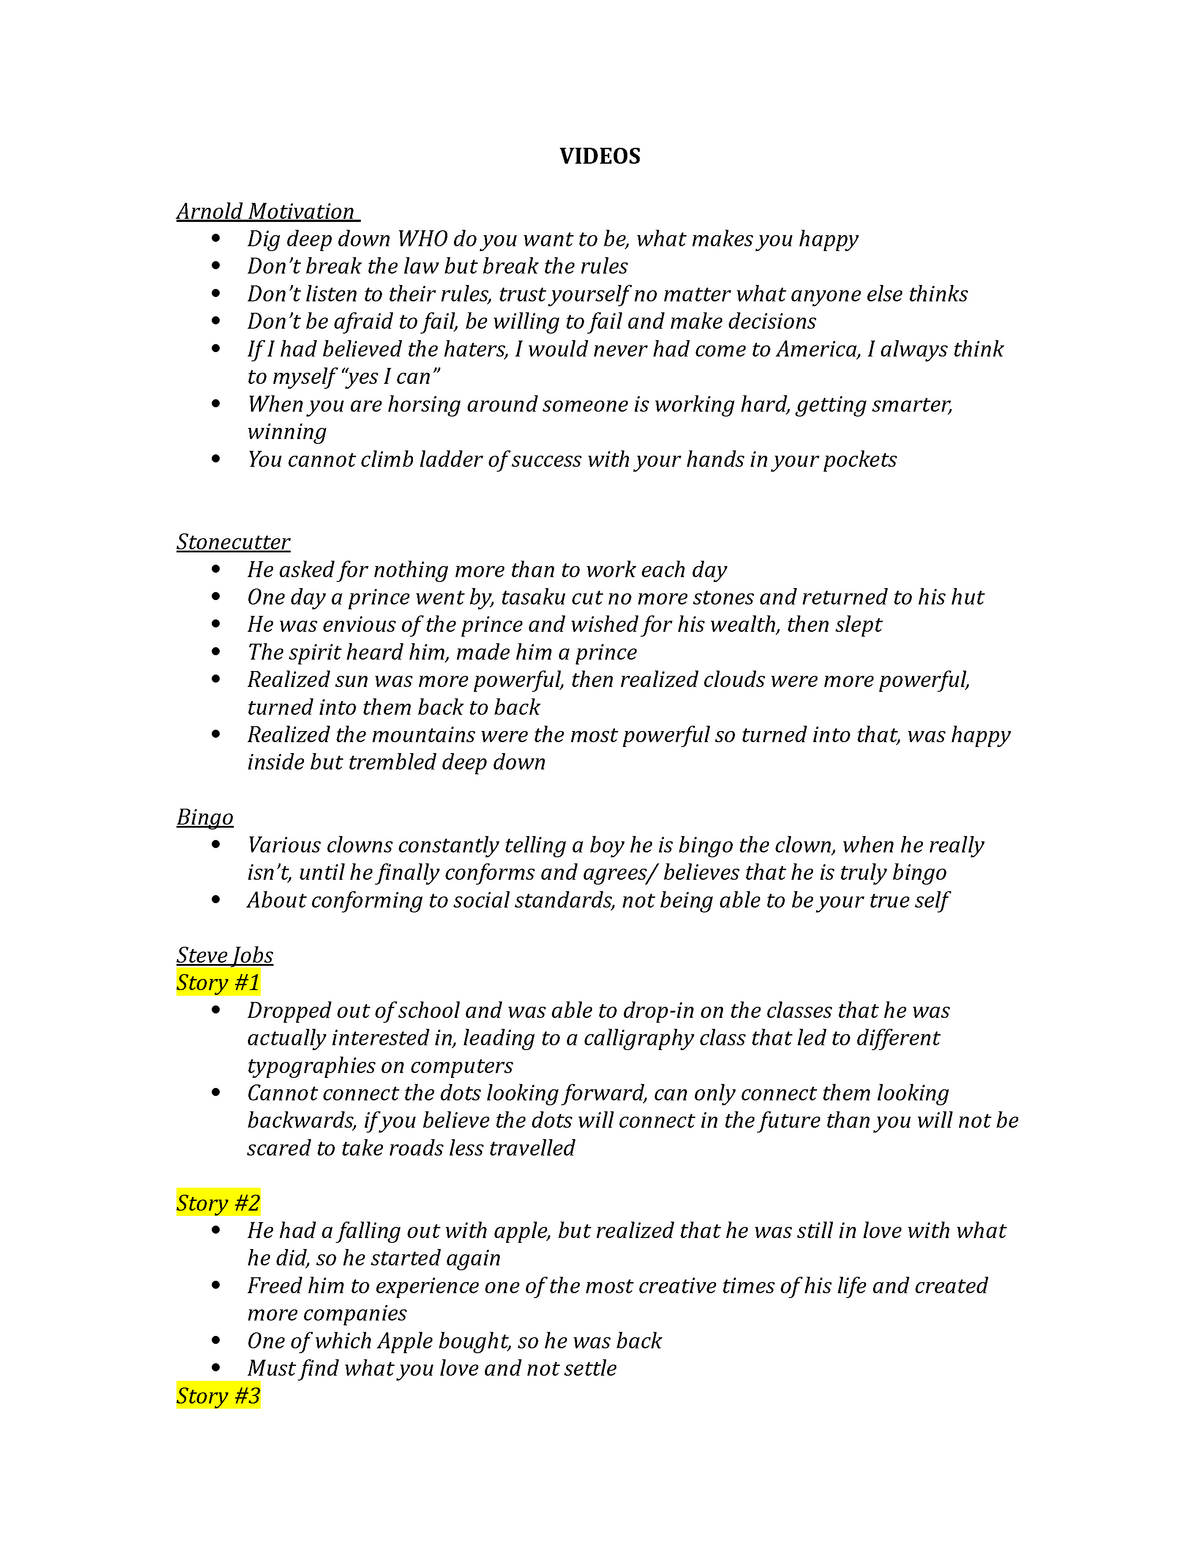 Lecture notes, lectures 8-14 - second half of the course